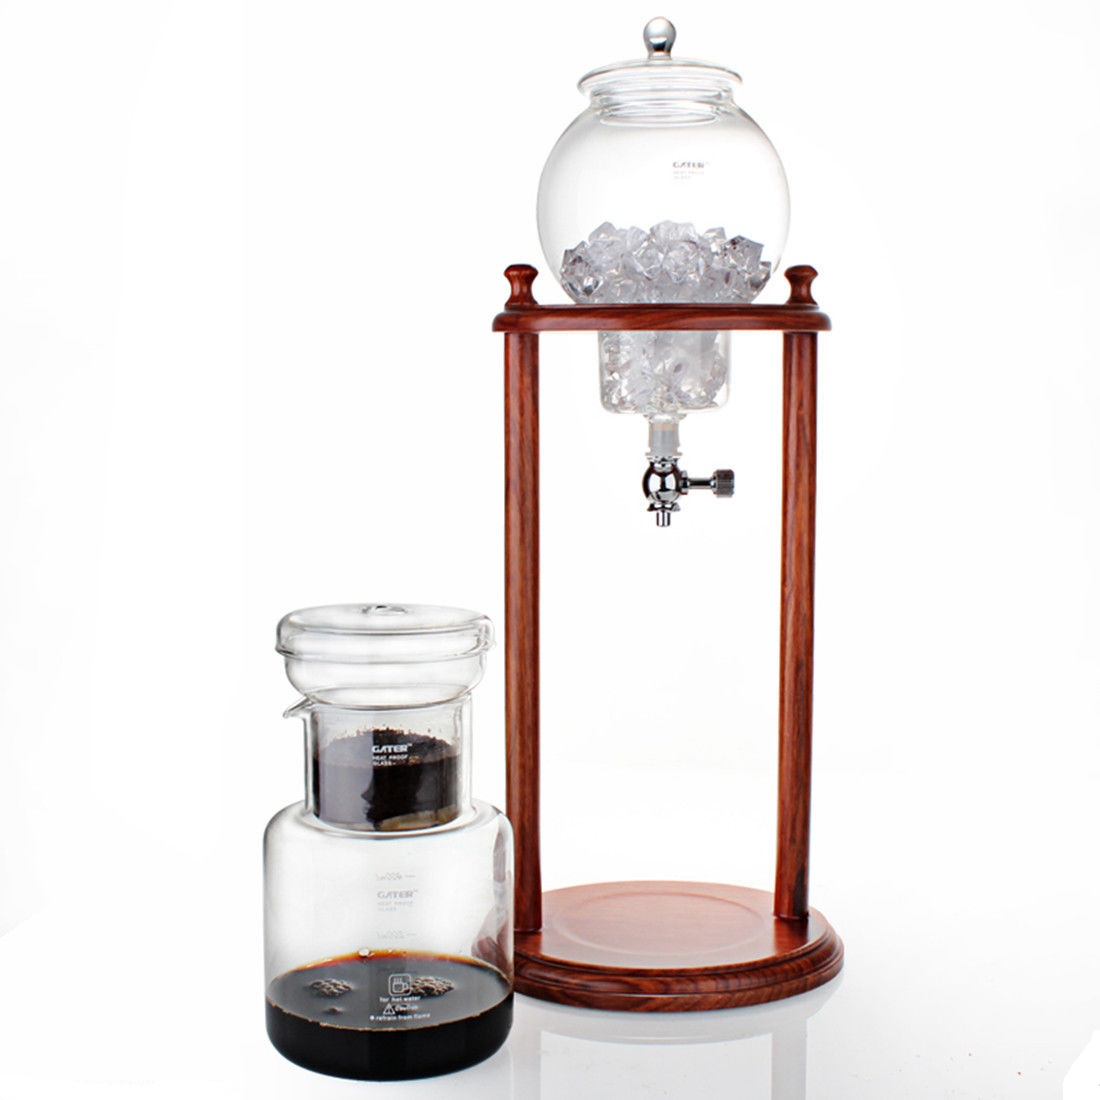 Buy Cold Drip Coffee Maker Bitcoin Accepted